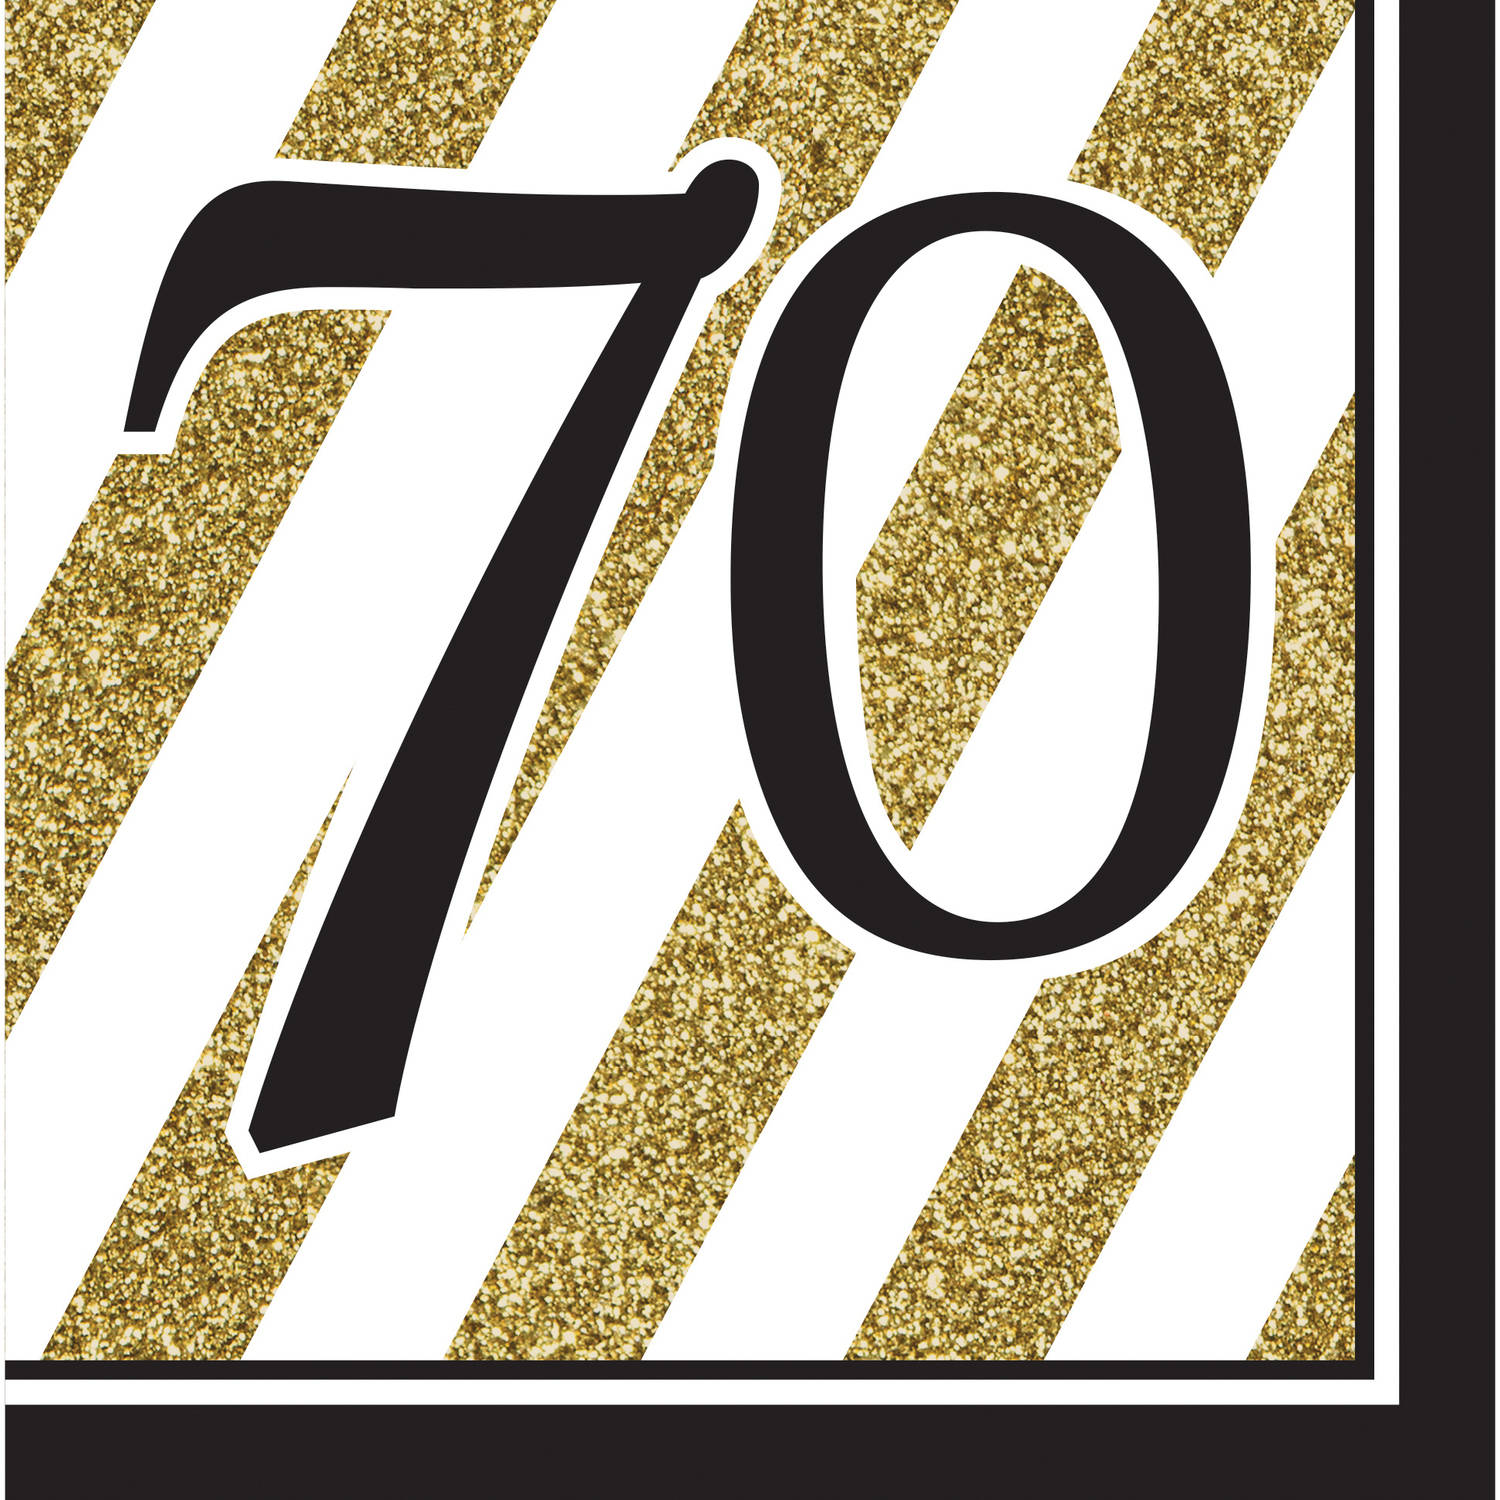 Black and Gold 70th Birthday Napkins 16pk  sc 1 st  Walmart & Black and Gold 70th Birthday Napkins 16pk - Walmart.com